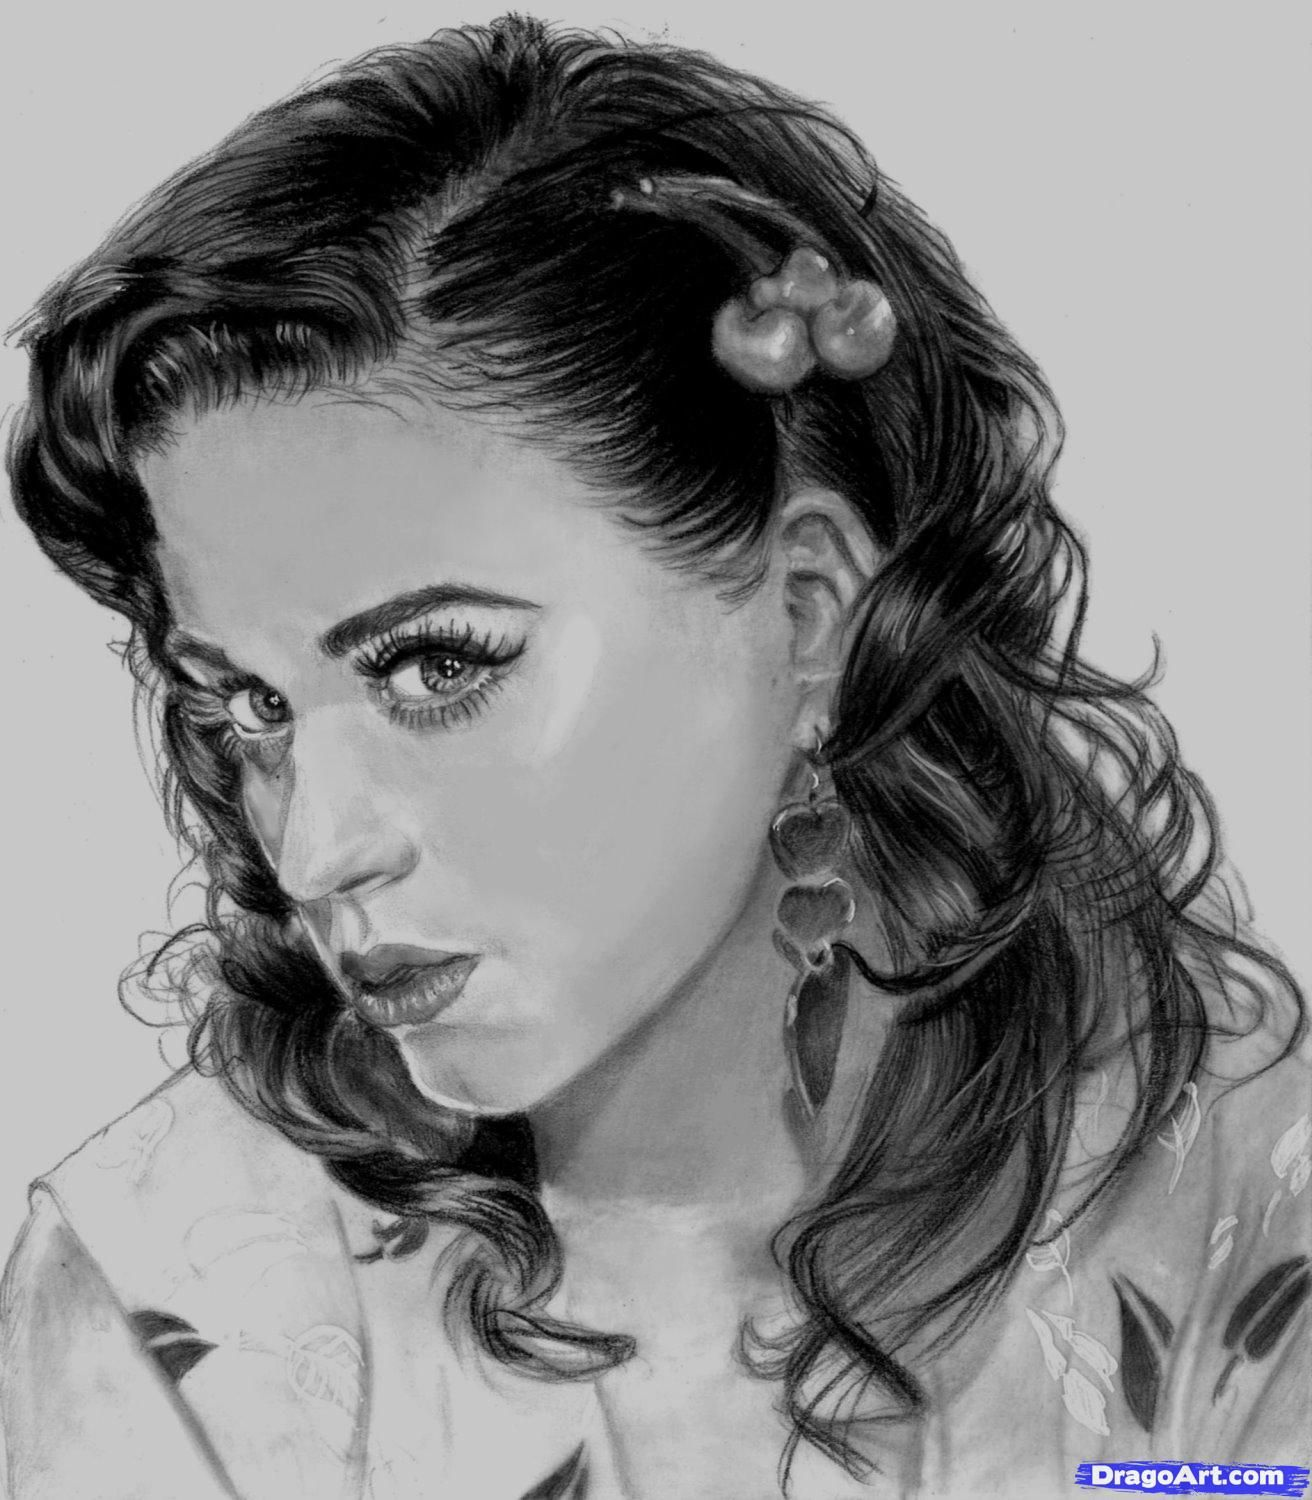 Free coloring pages katy perry - Character Drawings Of Famous People How To Draw Katy Perry